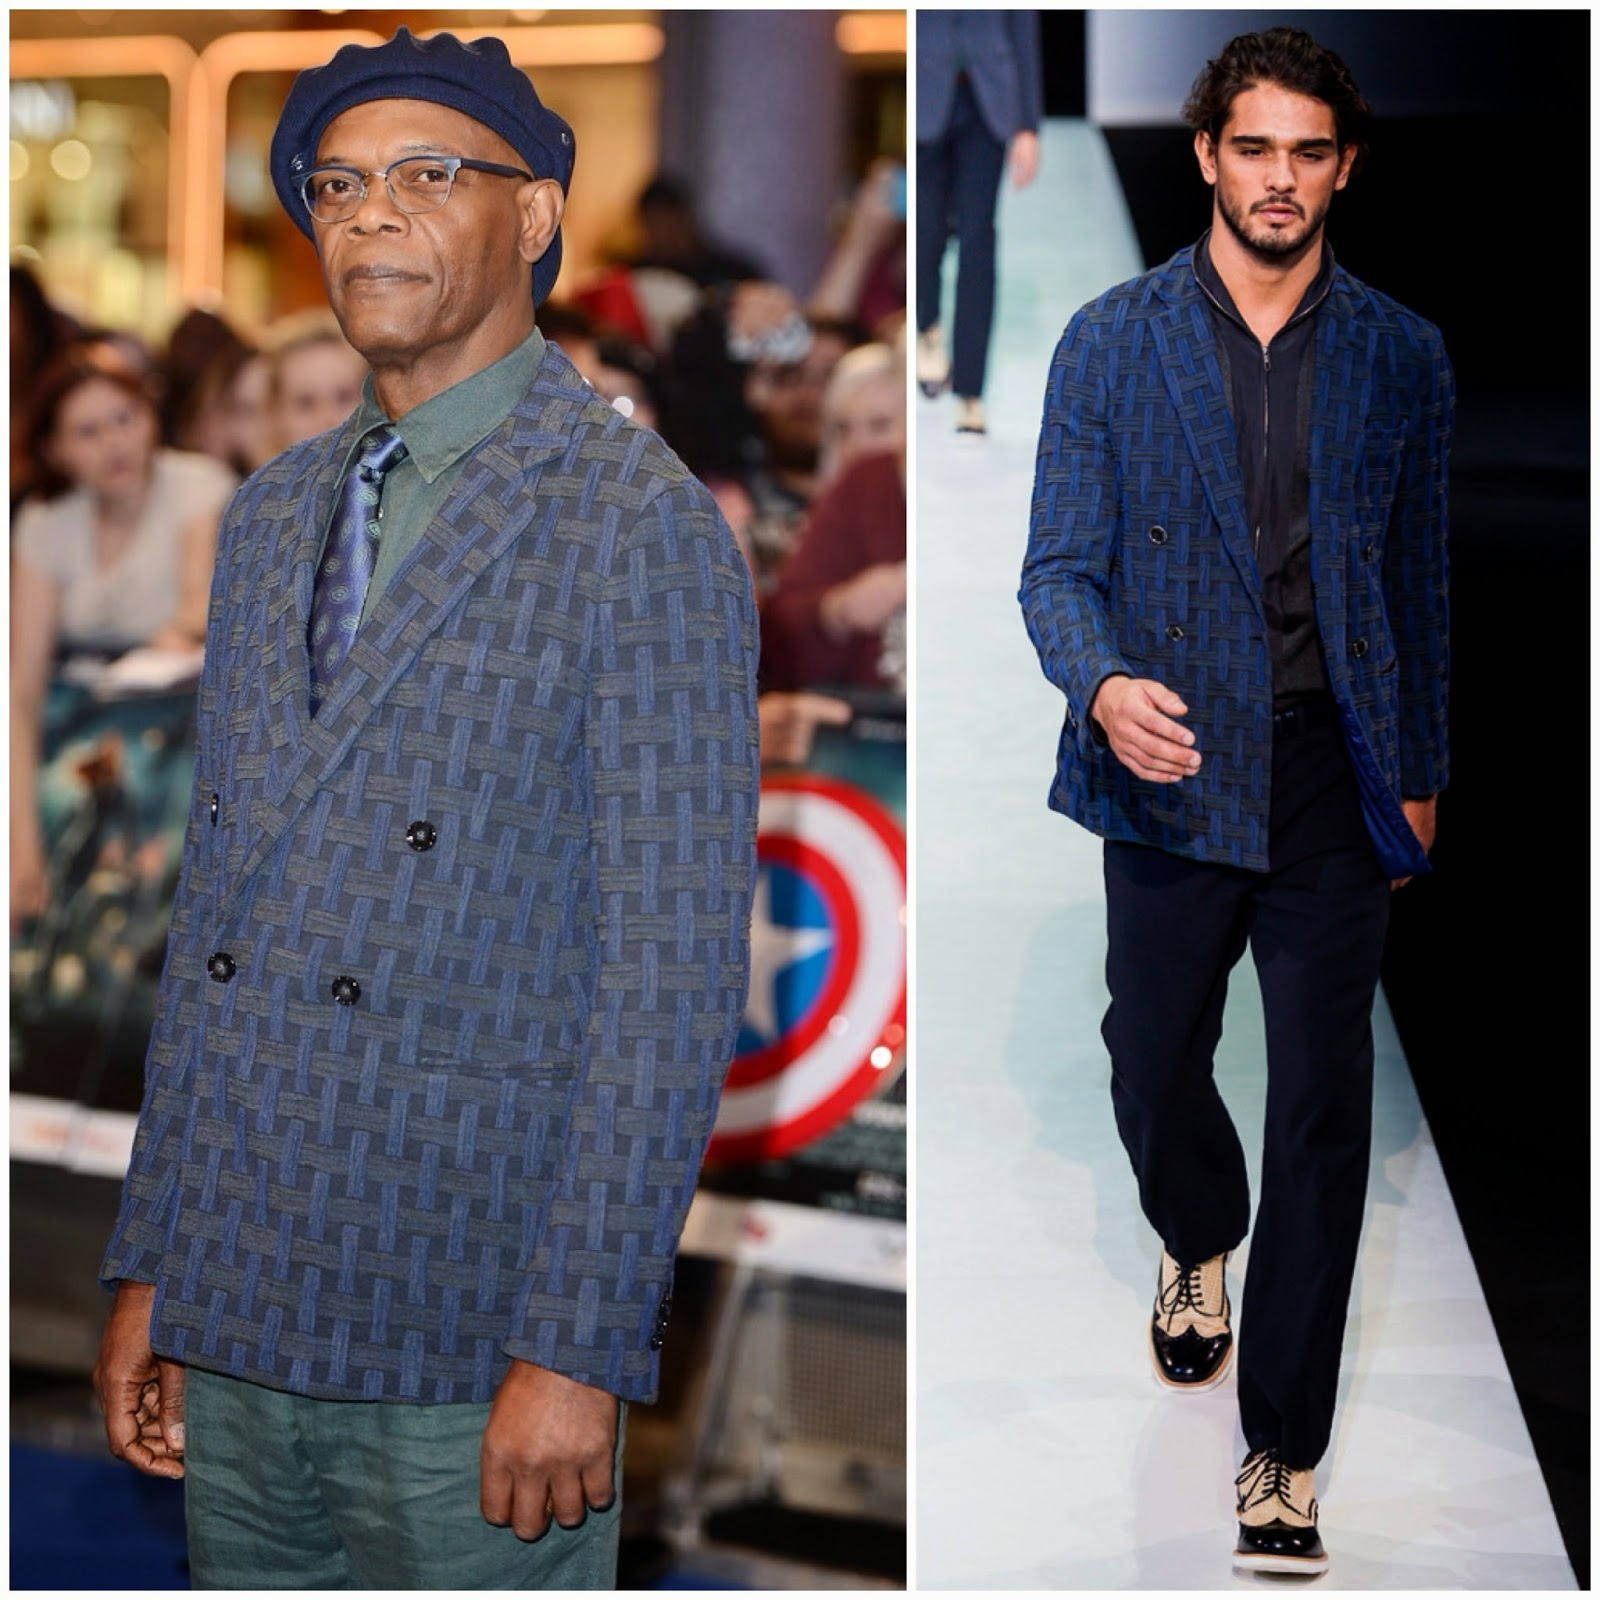 Samuel L Jackson in Giorgio Armani - 'Captain America: The Winter Soldier' UK Premiere